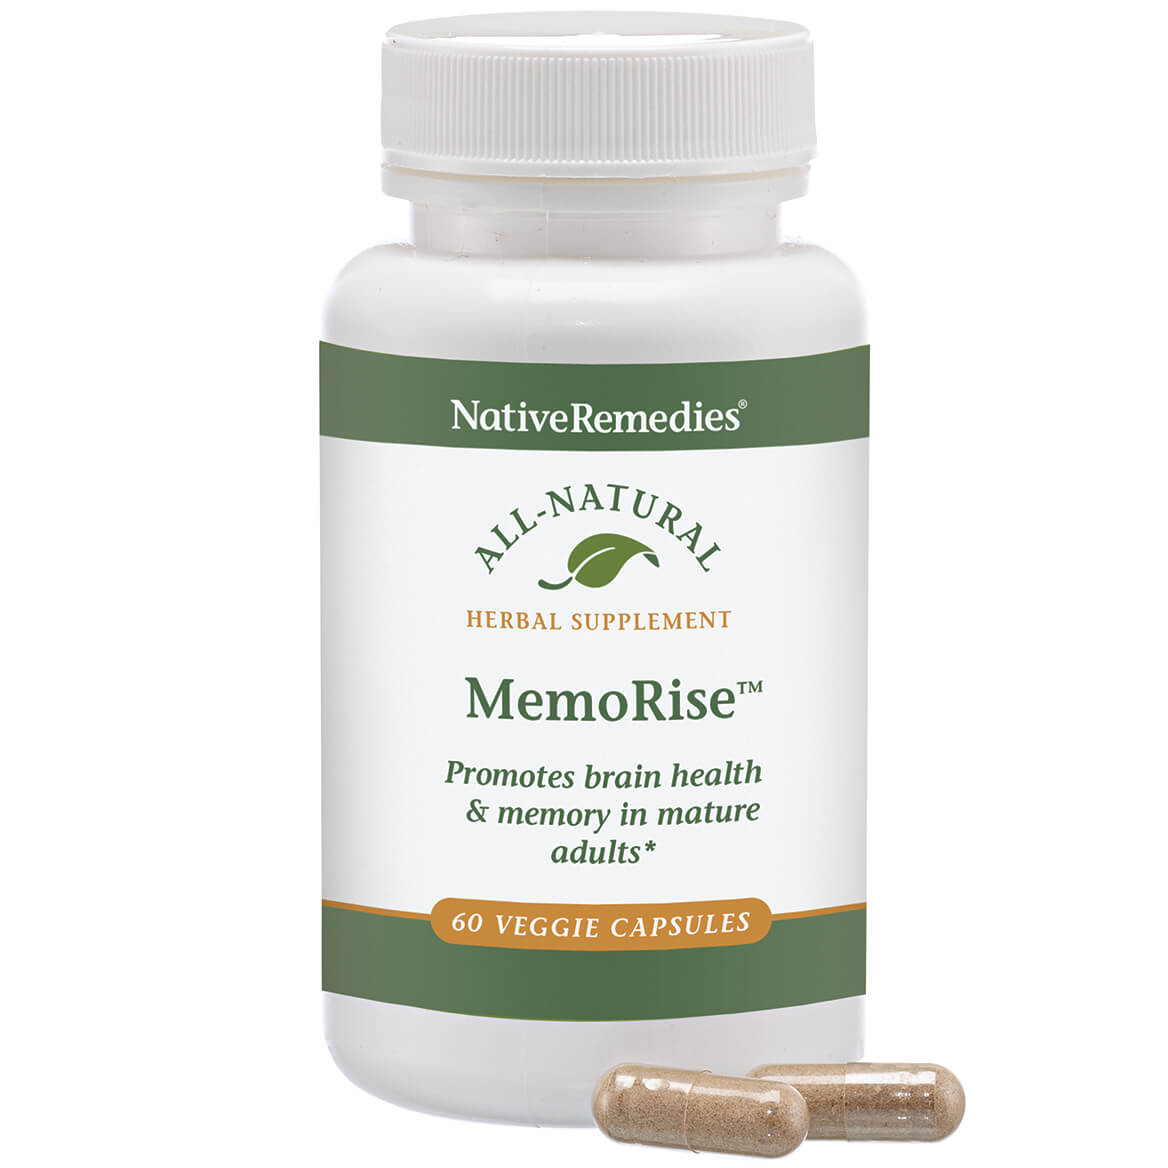 NativeRemedies® MemoRise™ - 60 Veggie Capsules-351922